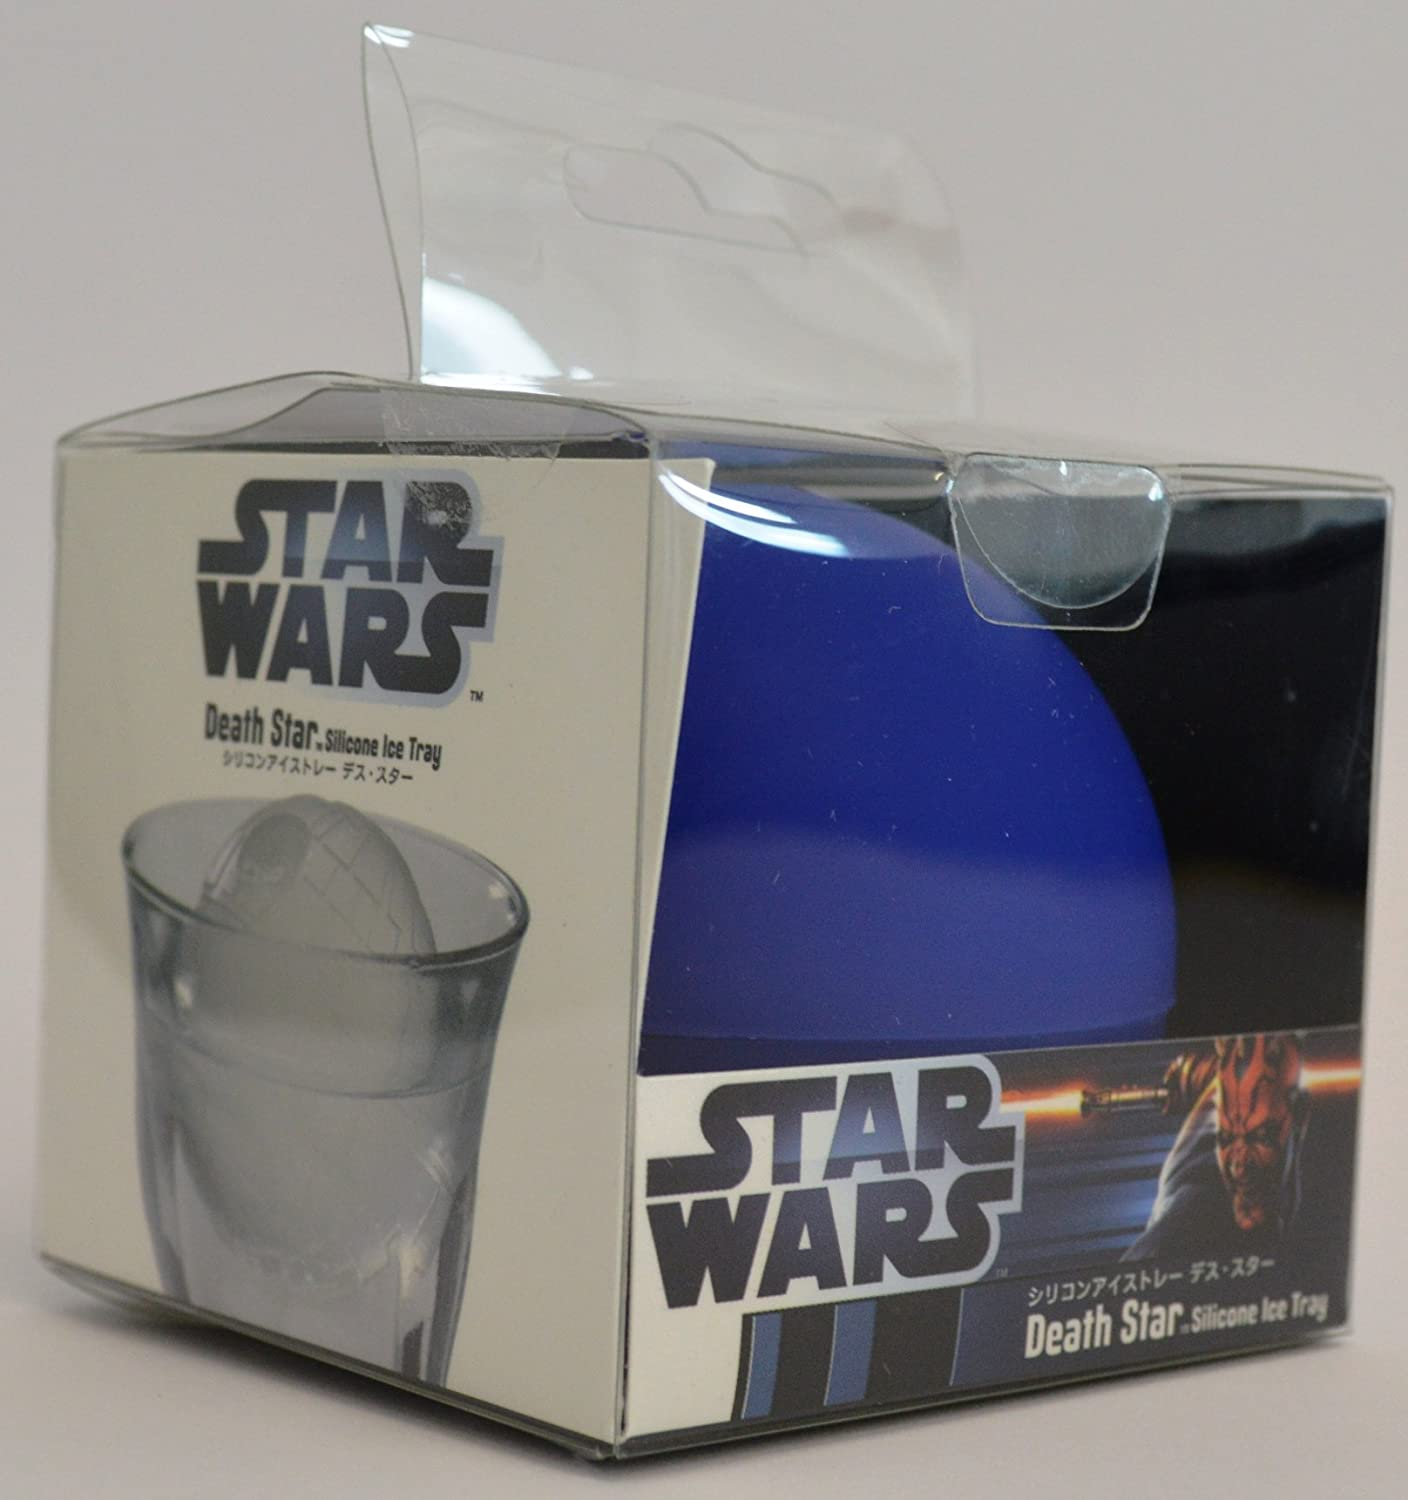 Jooks Ice Ball Mould Star Wars Death Star 3D Mould Silicone Prime Ice Sphere Maker Ice Cube Mould Tray